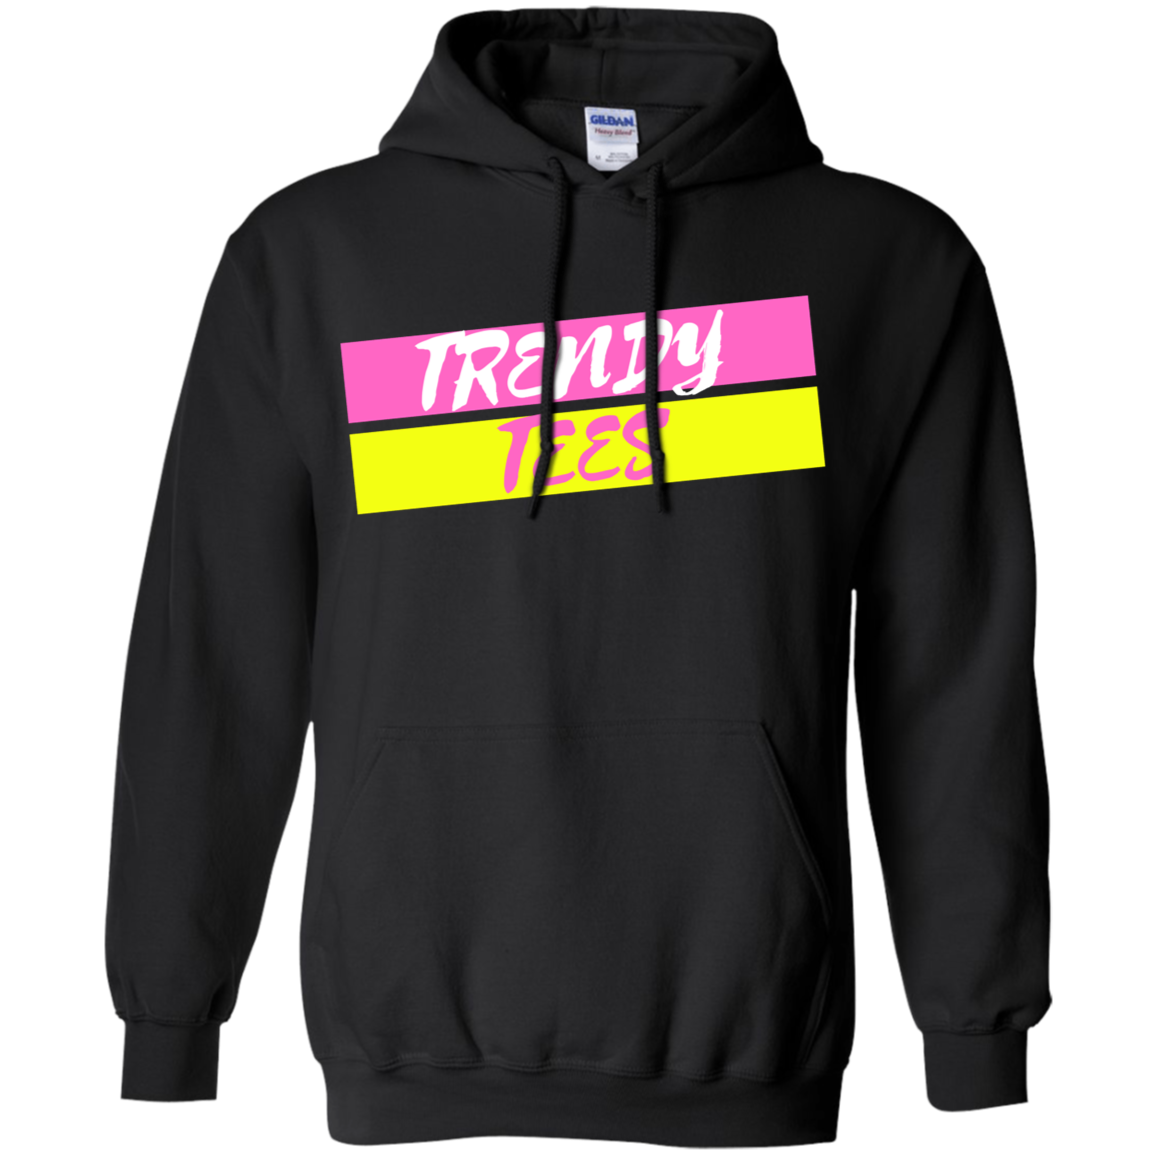 Trendy Tees Official Licensed Pullover Hoodie 8 oz.